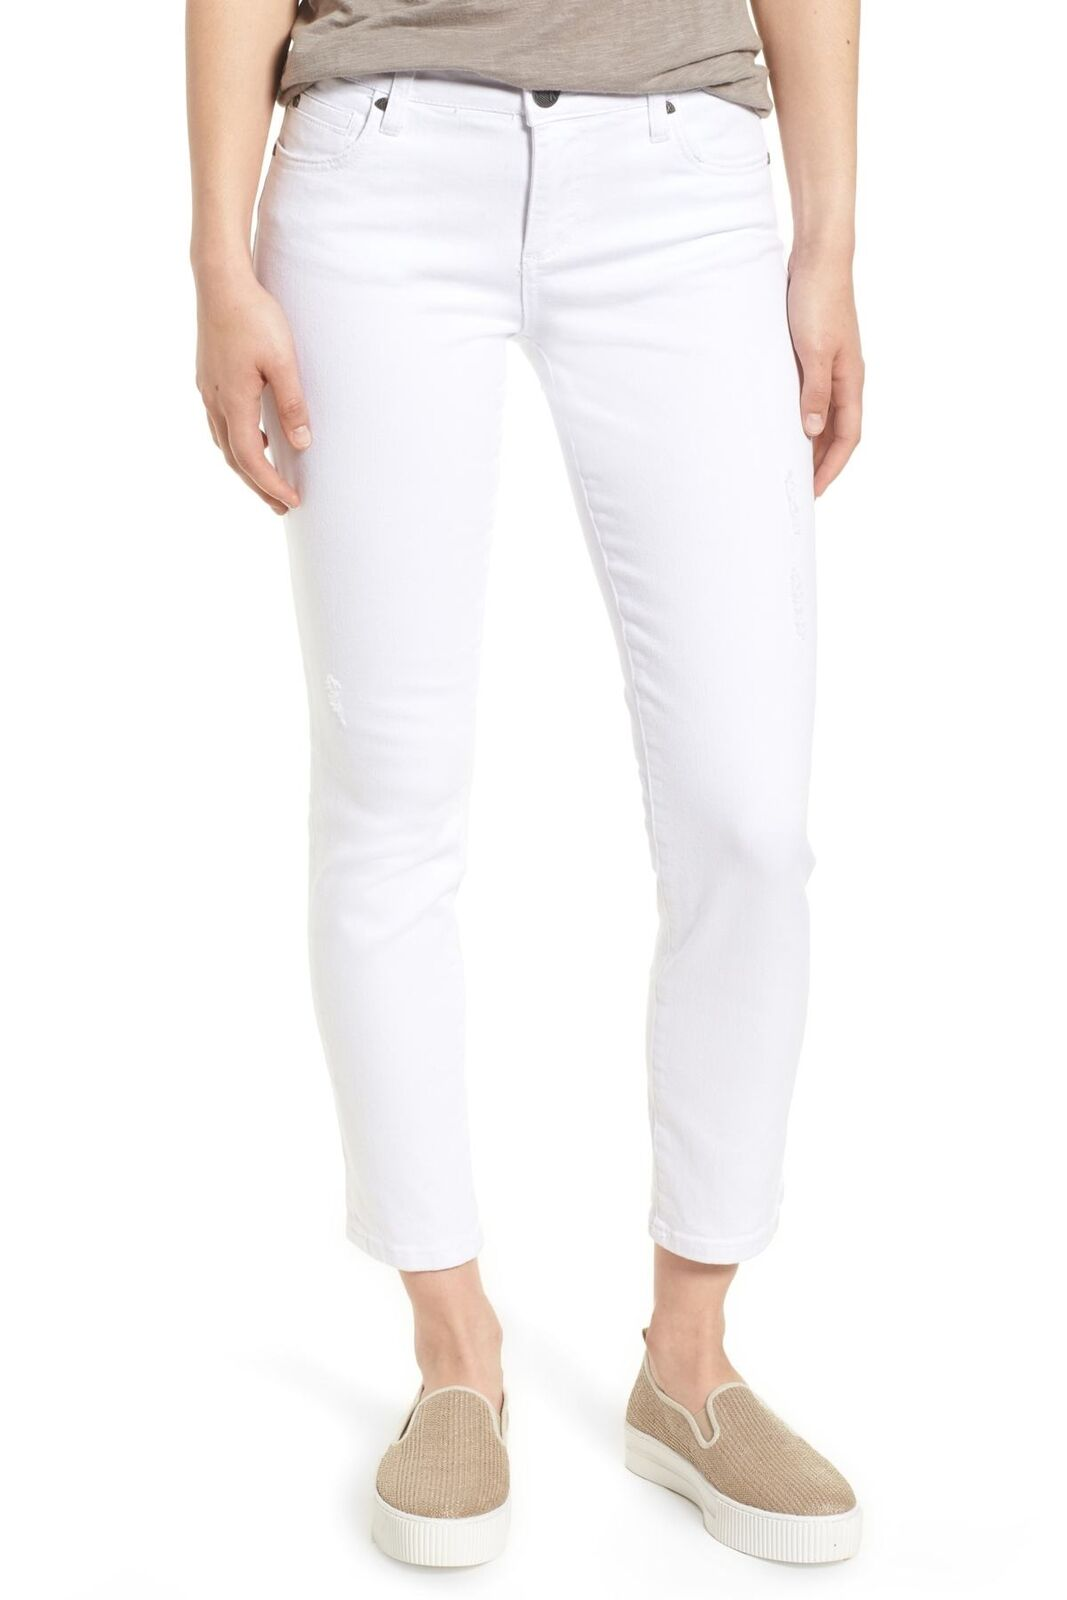 KUT from the Kloth 150946 Catherine Straight Leg Ankle Jeans (Optic White) Sz. 0